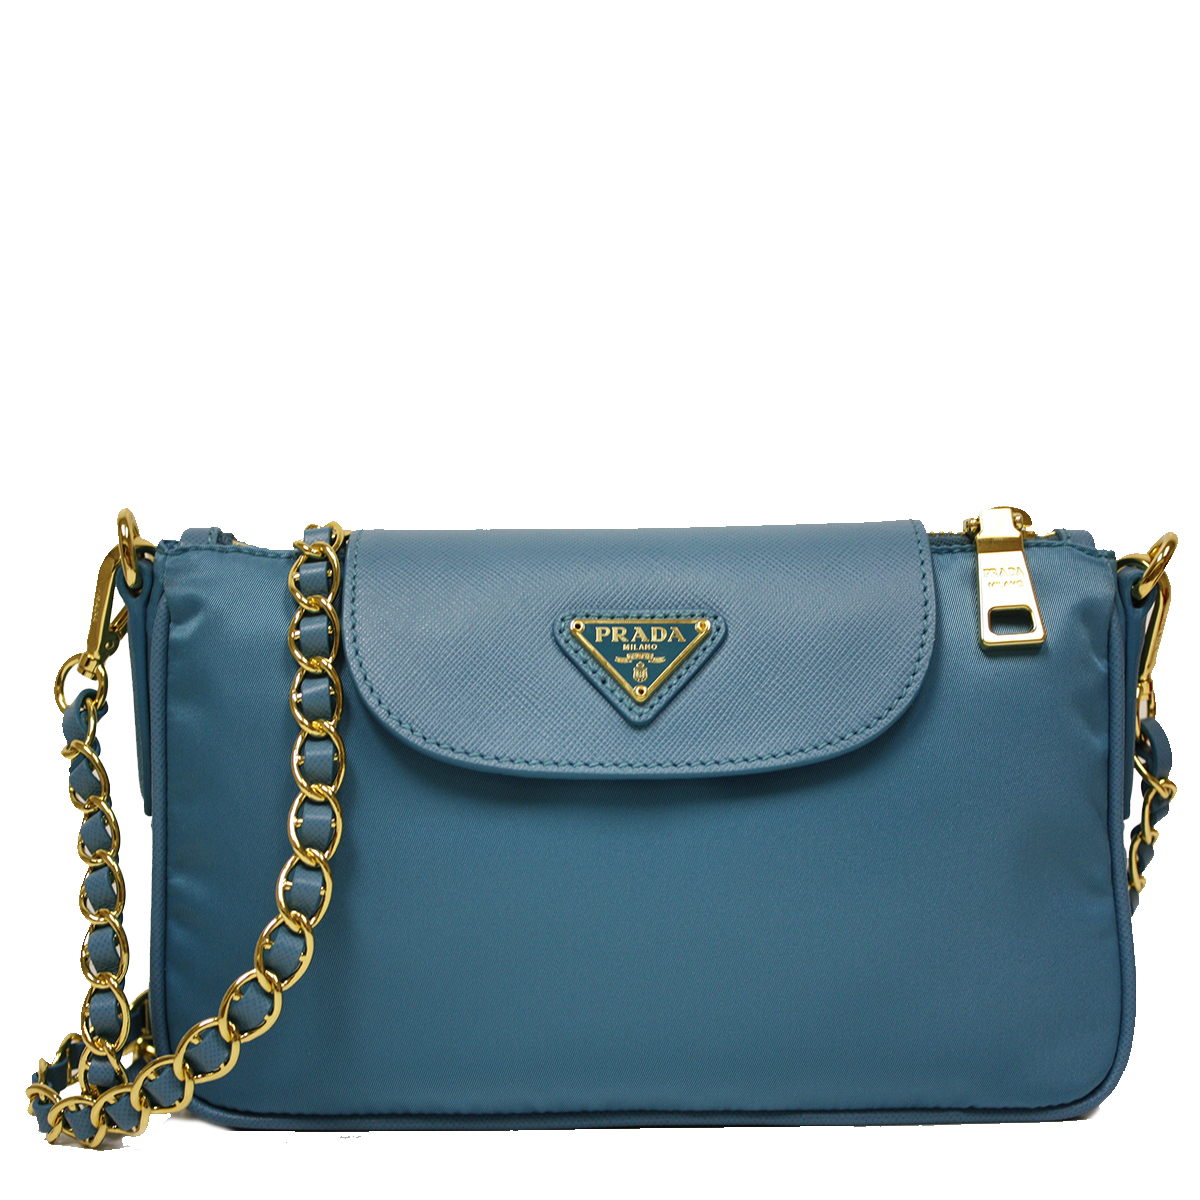 3aaf23ba625025 Prada Blue Tessuto Saffiano Leather Chain Handle Crossbody Bag .